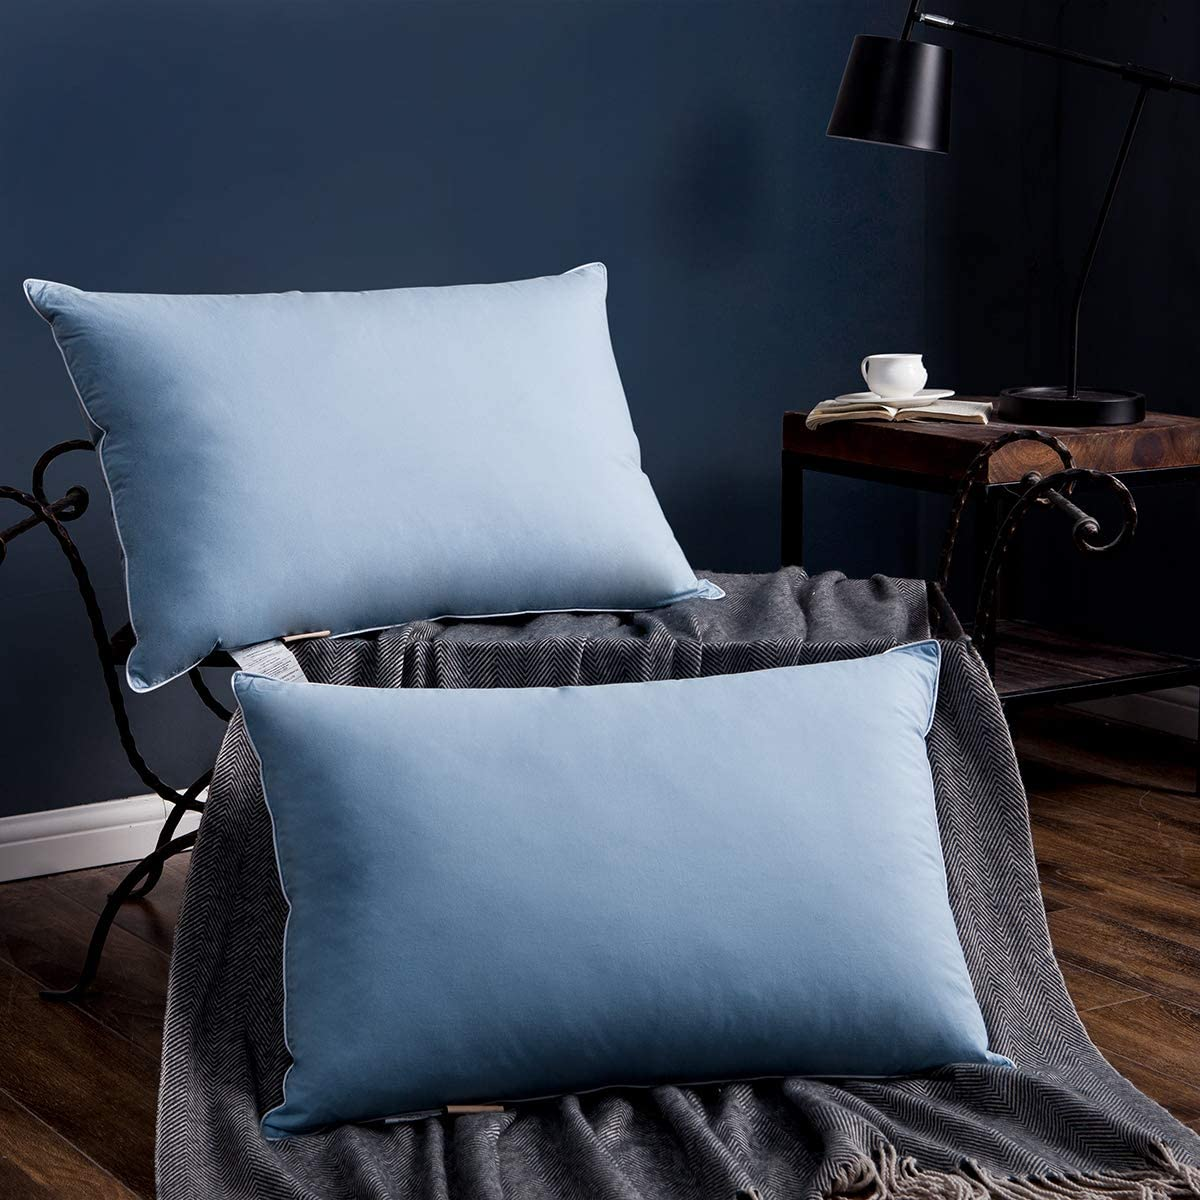 SNOWMAN Luxury Goose Down Pillow for Sleeping (Set of 2) Queen Size Pillow - 100% Cotton Shell Breathable and Fresh, Blue